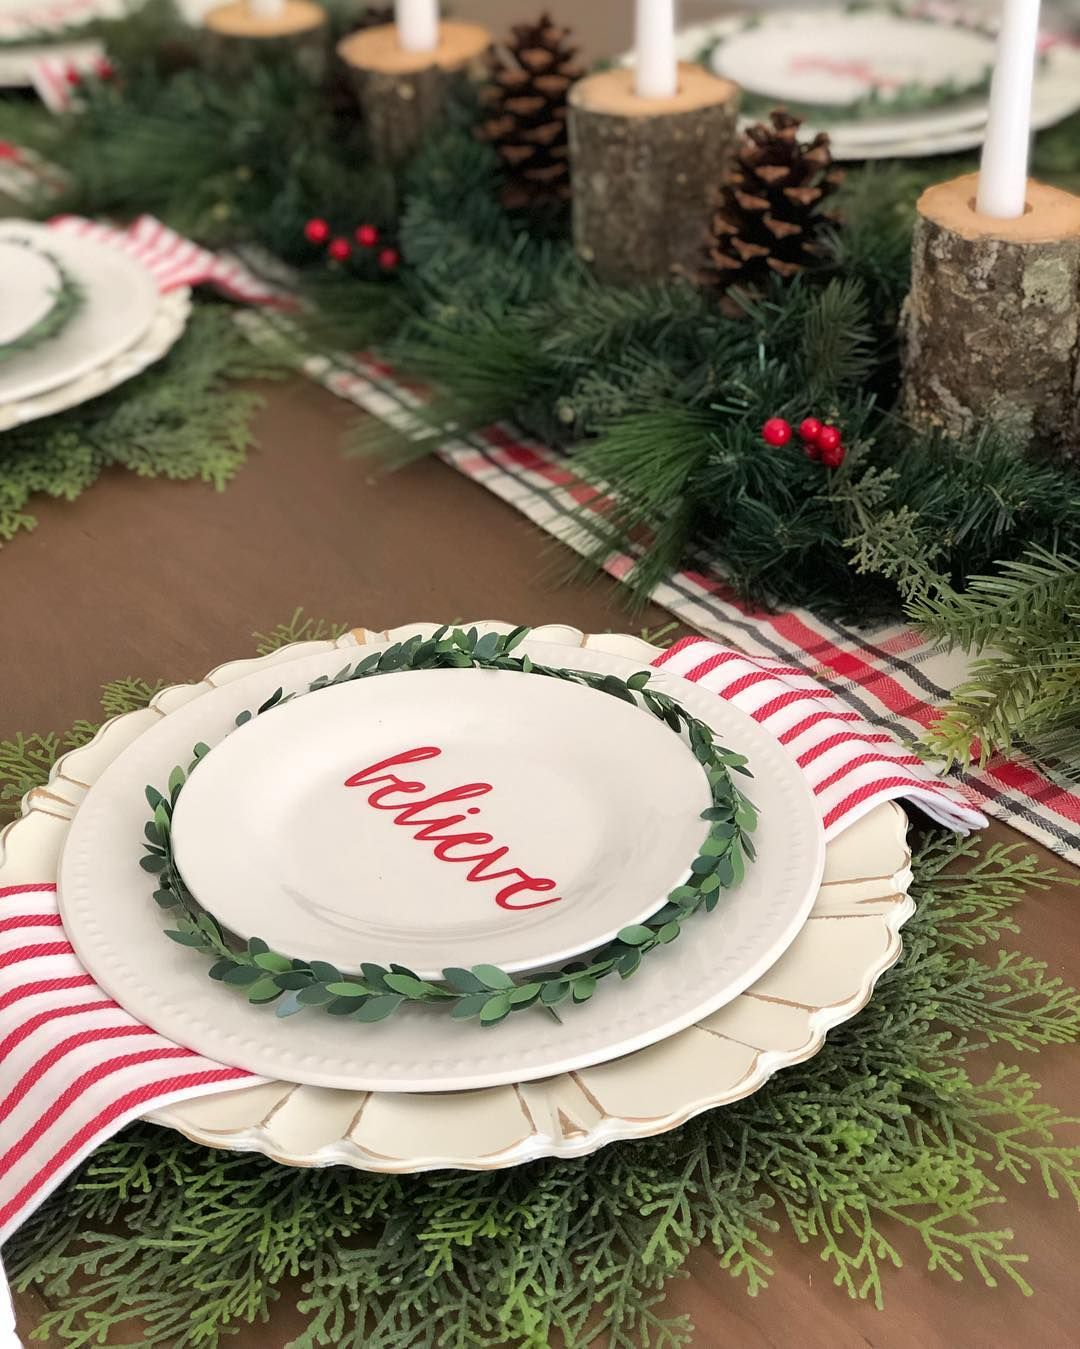 Tiffany On Instagram Happy Chilly Sunday Morning We Have Gone From Summer Straig Christmas Table Decorations Holiday Tablescapes Christmas Entertaining